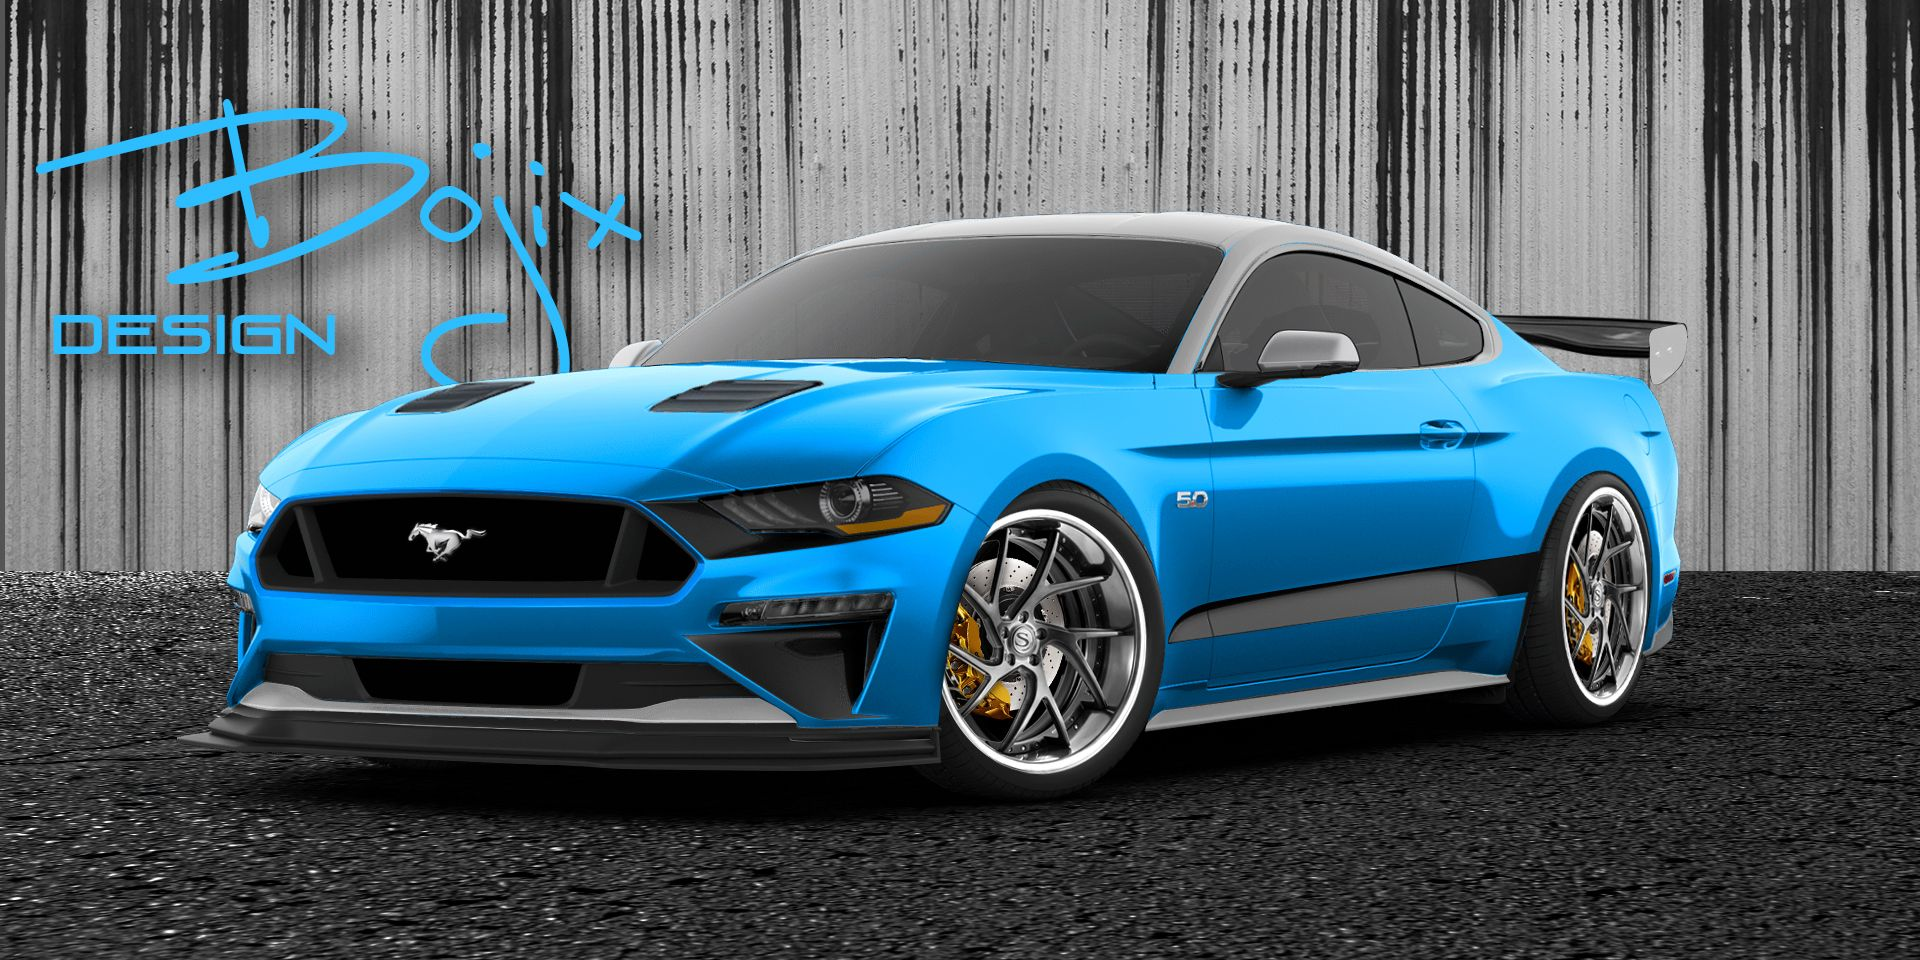 2018 Ford Mustang Gt By Bojix Design Ford Mustang Coupe Ford